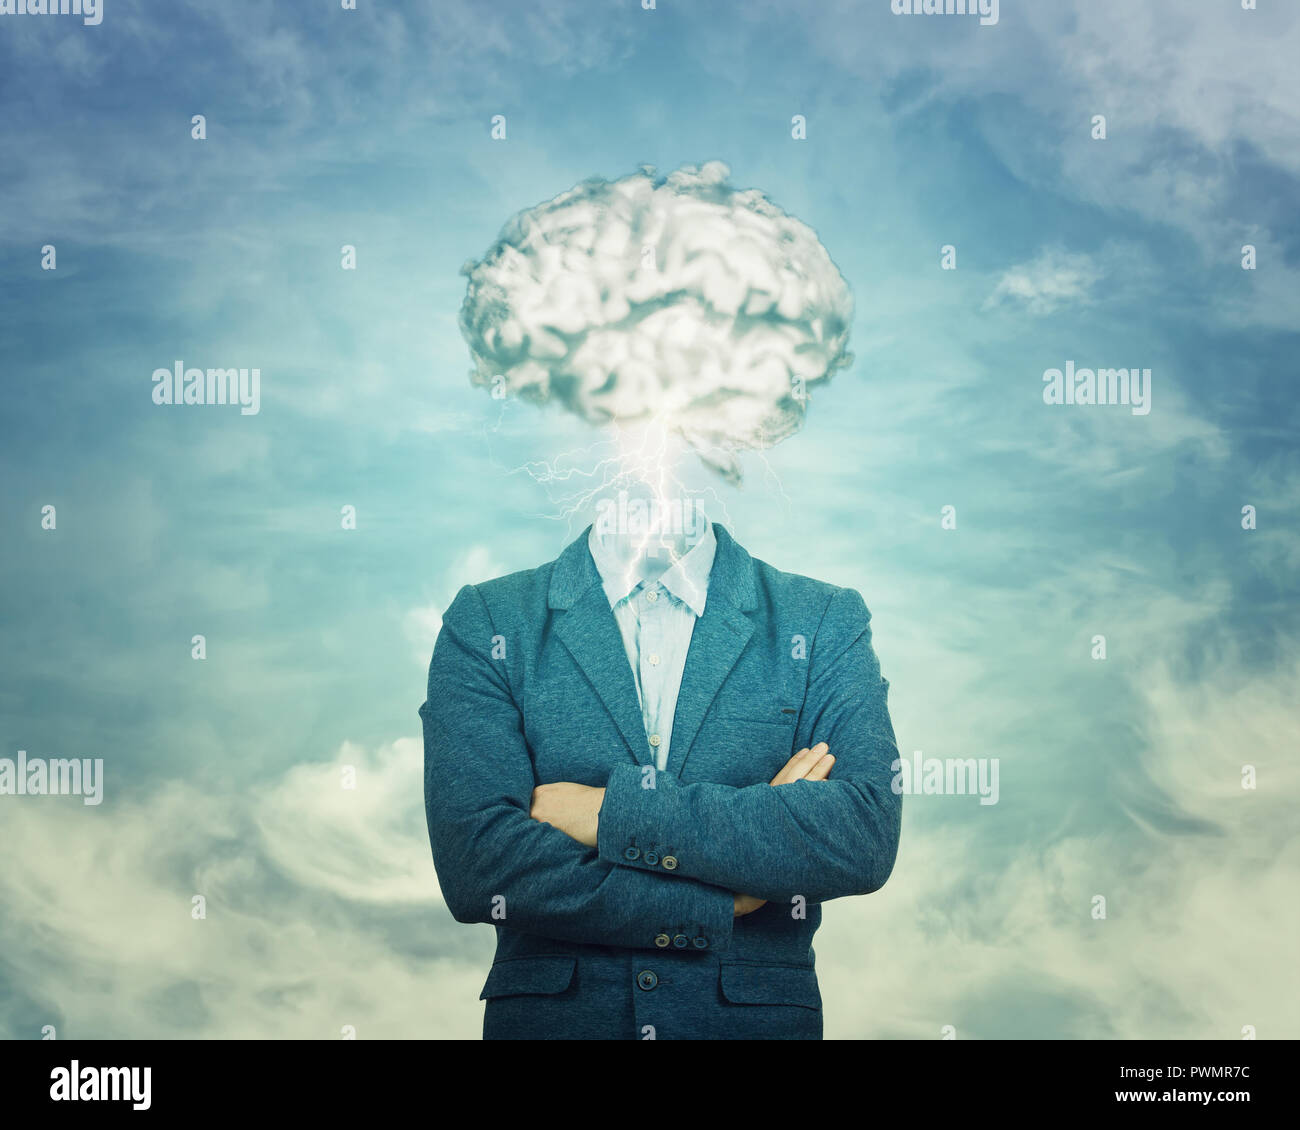 Brainstorm concept as man has invisible face and cloud shaped brain instead of head. Incognito introvert hiden identity. Head in the clouds person soc - Stock Image